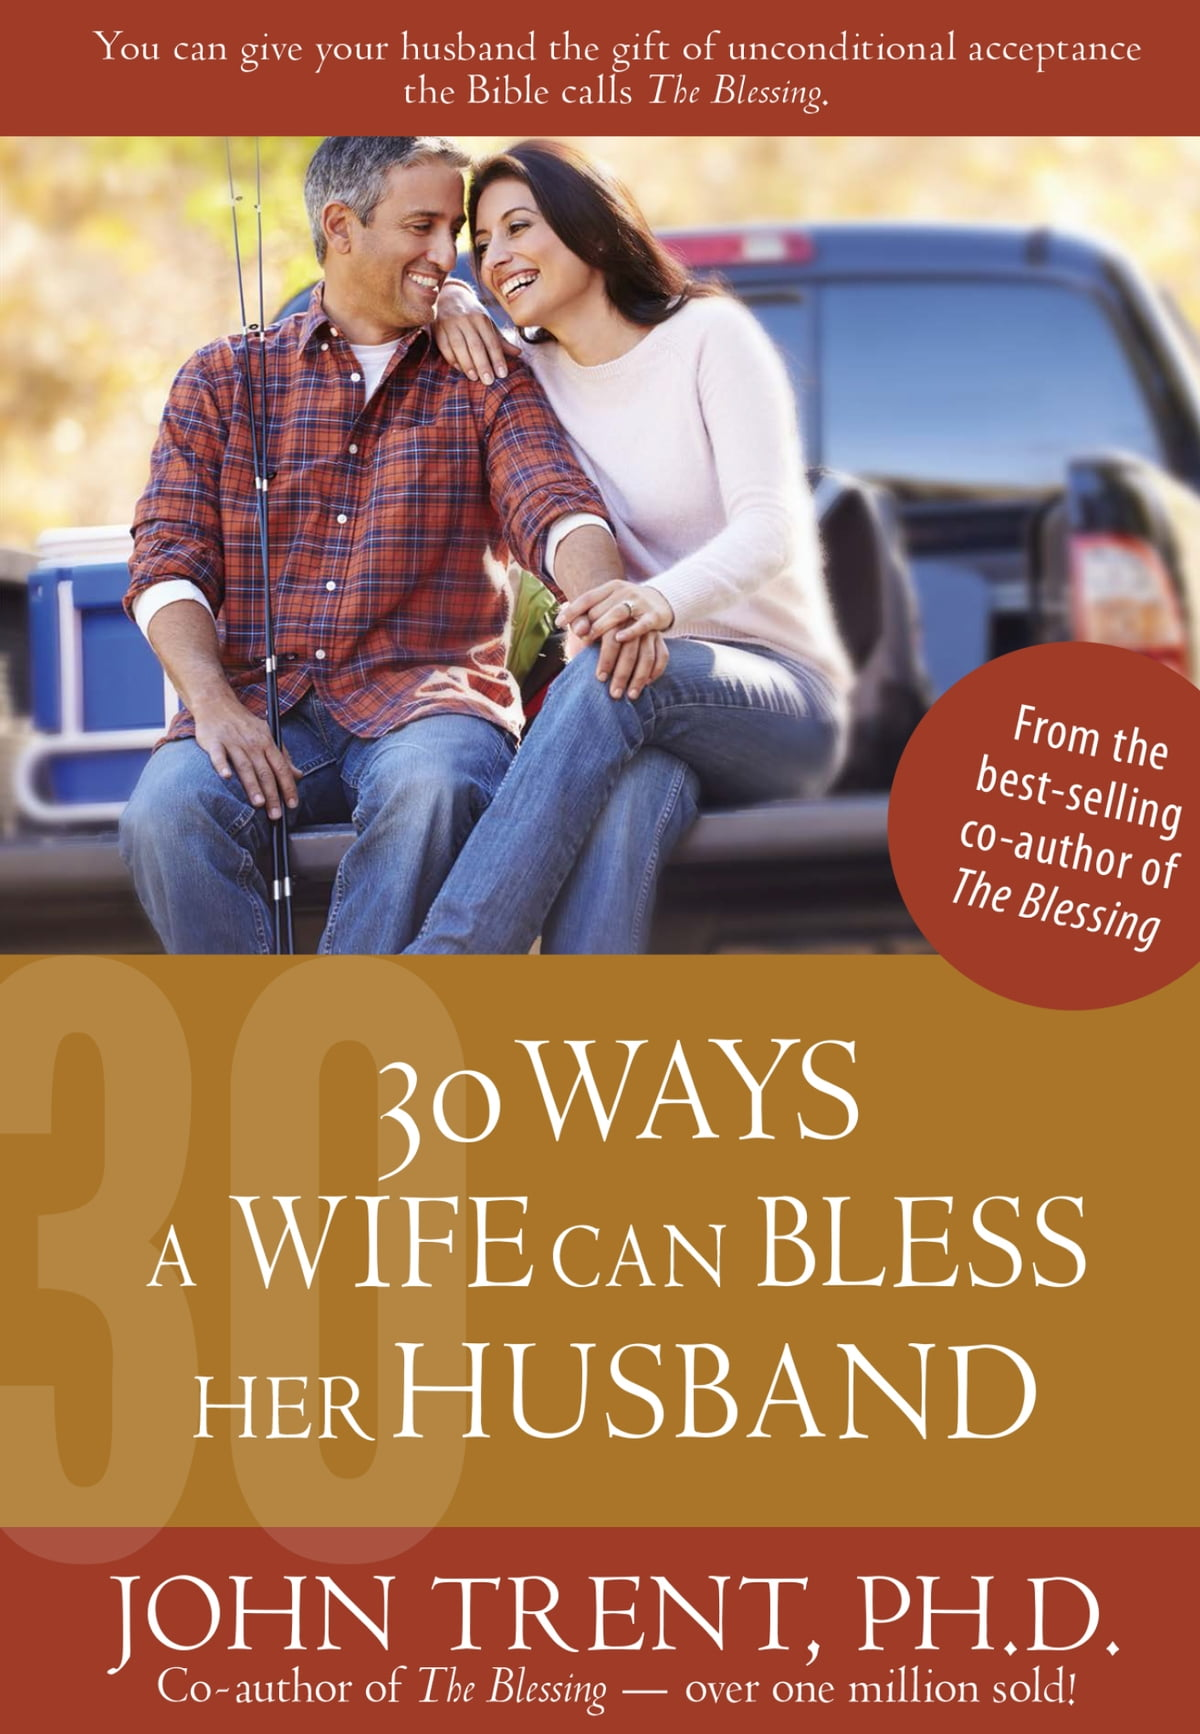 What to give her husband for 30 years 85